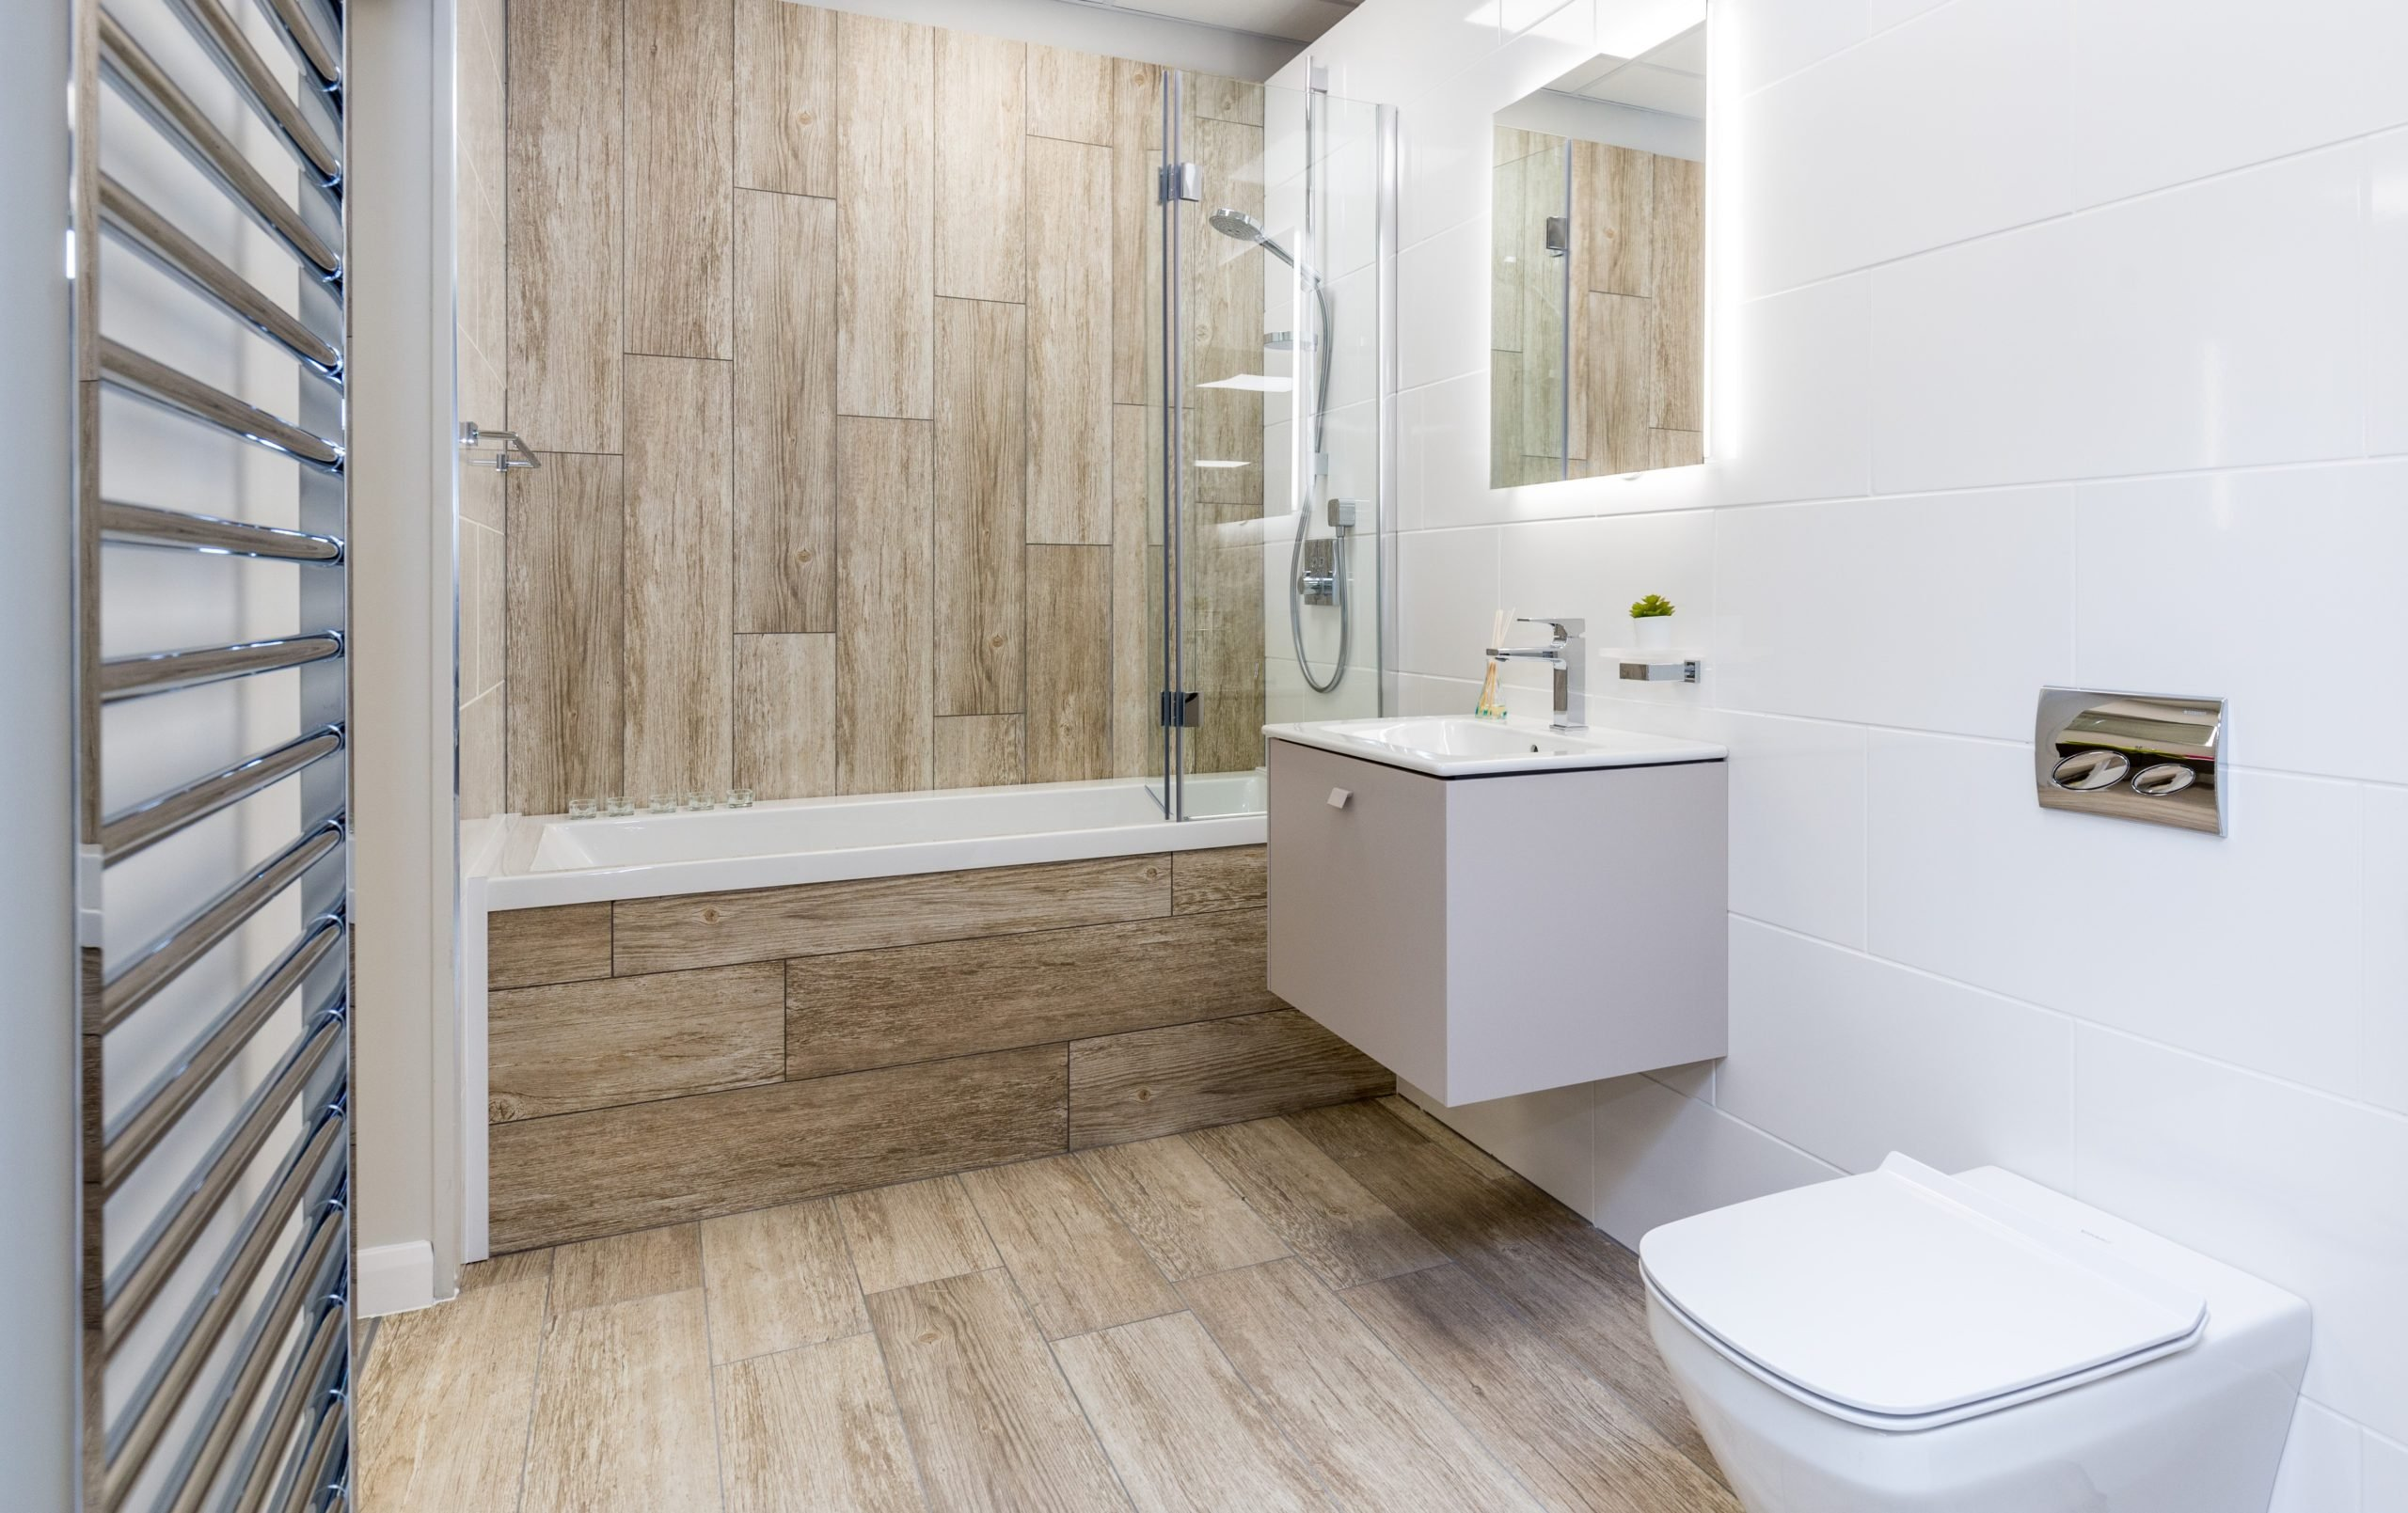 Textured timber cladding for this modern bathroom